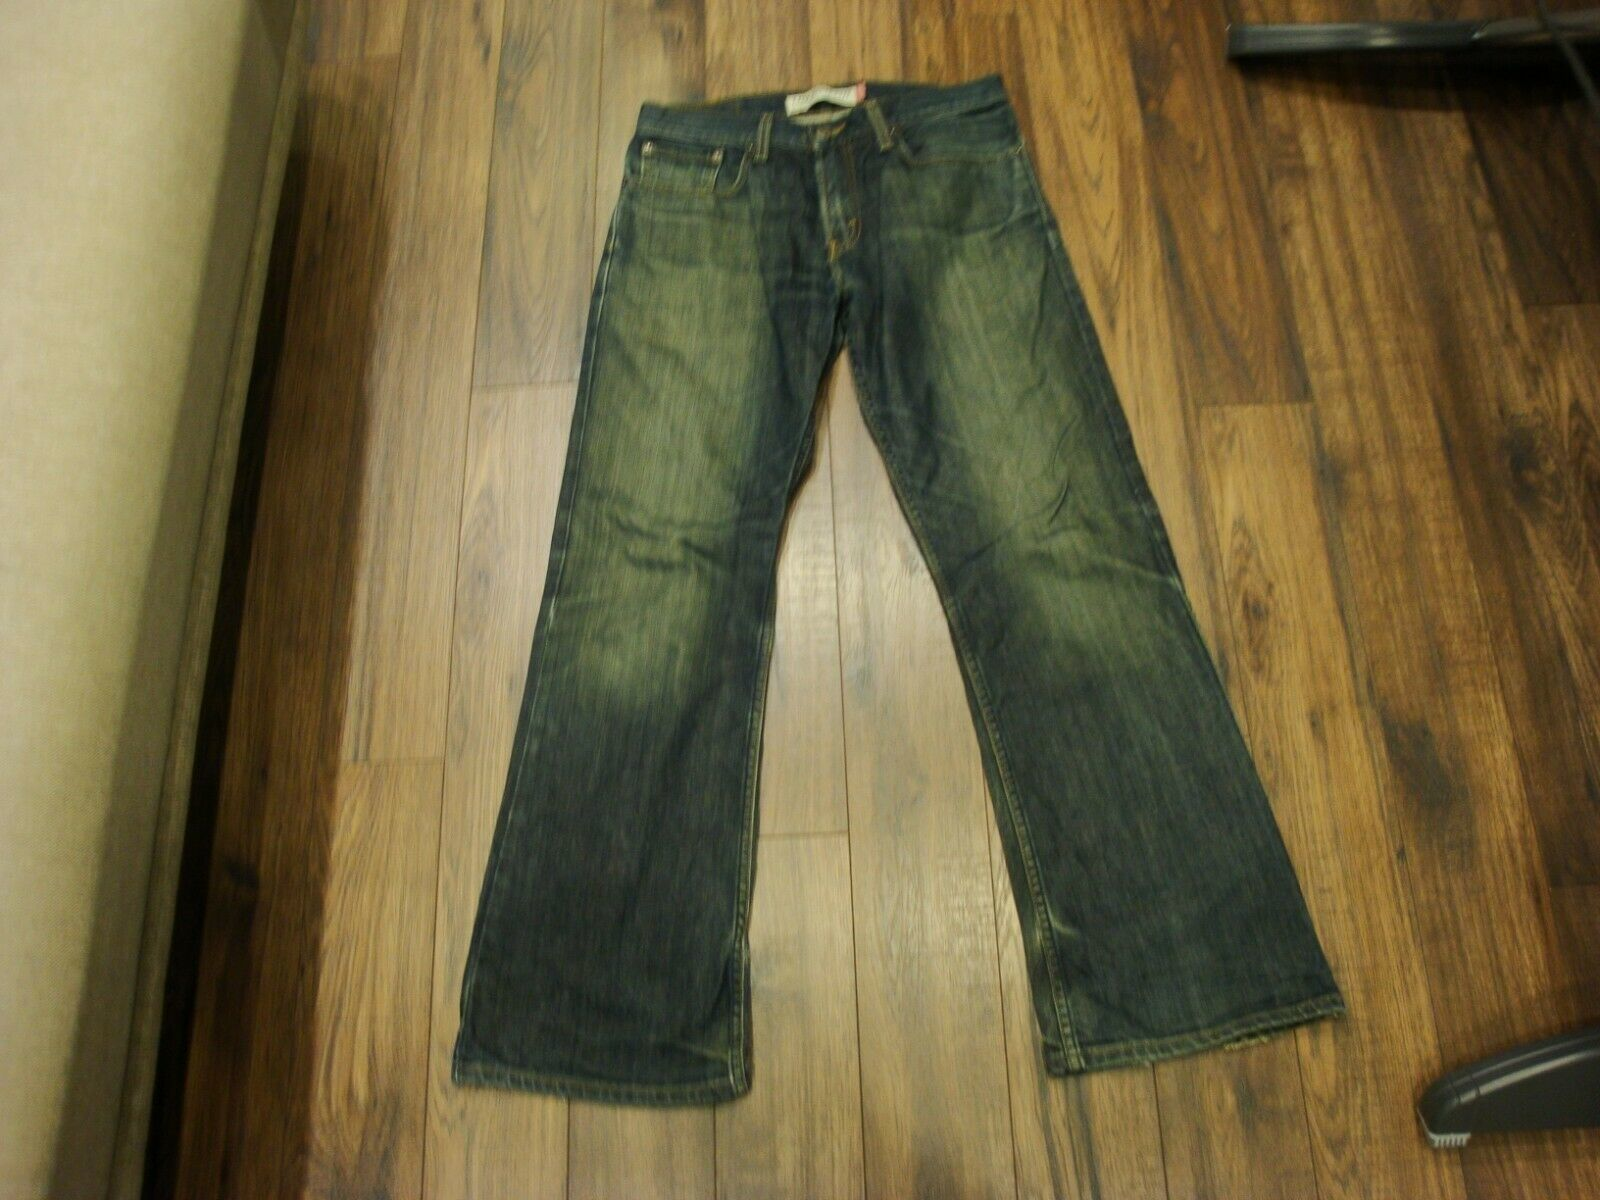 Primary image for Levi's® 527 Mens Jeans Size W31 L30  100% Cotton Original Product Made In Mexico